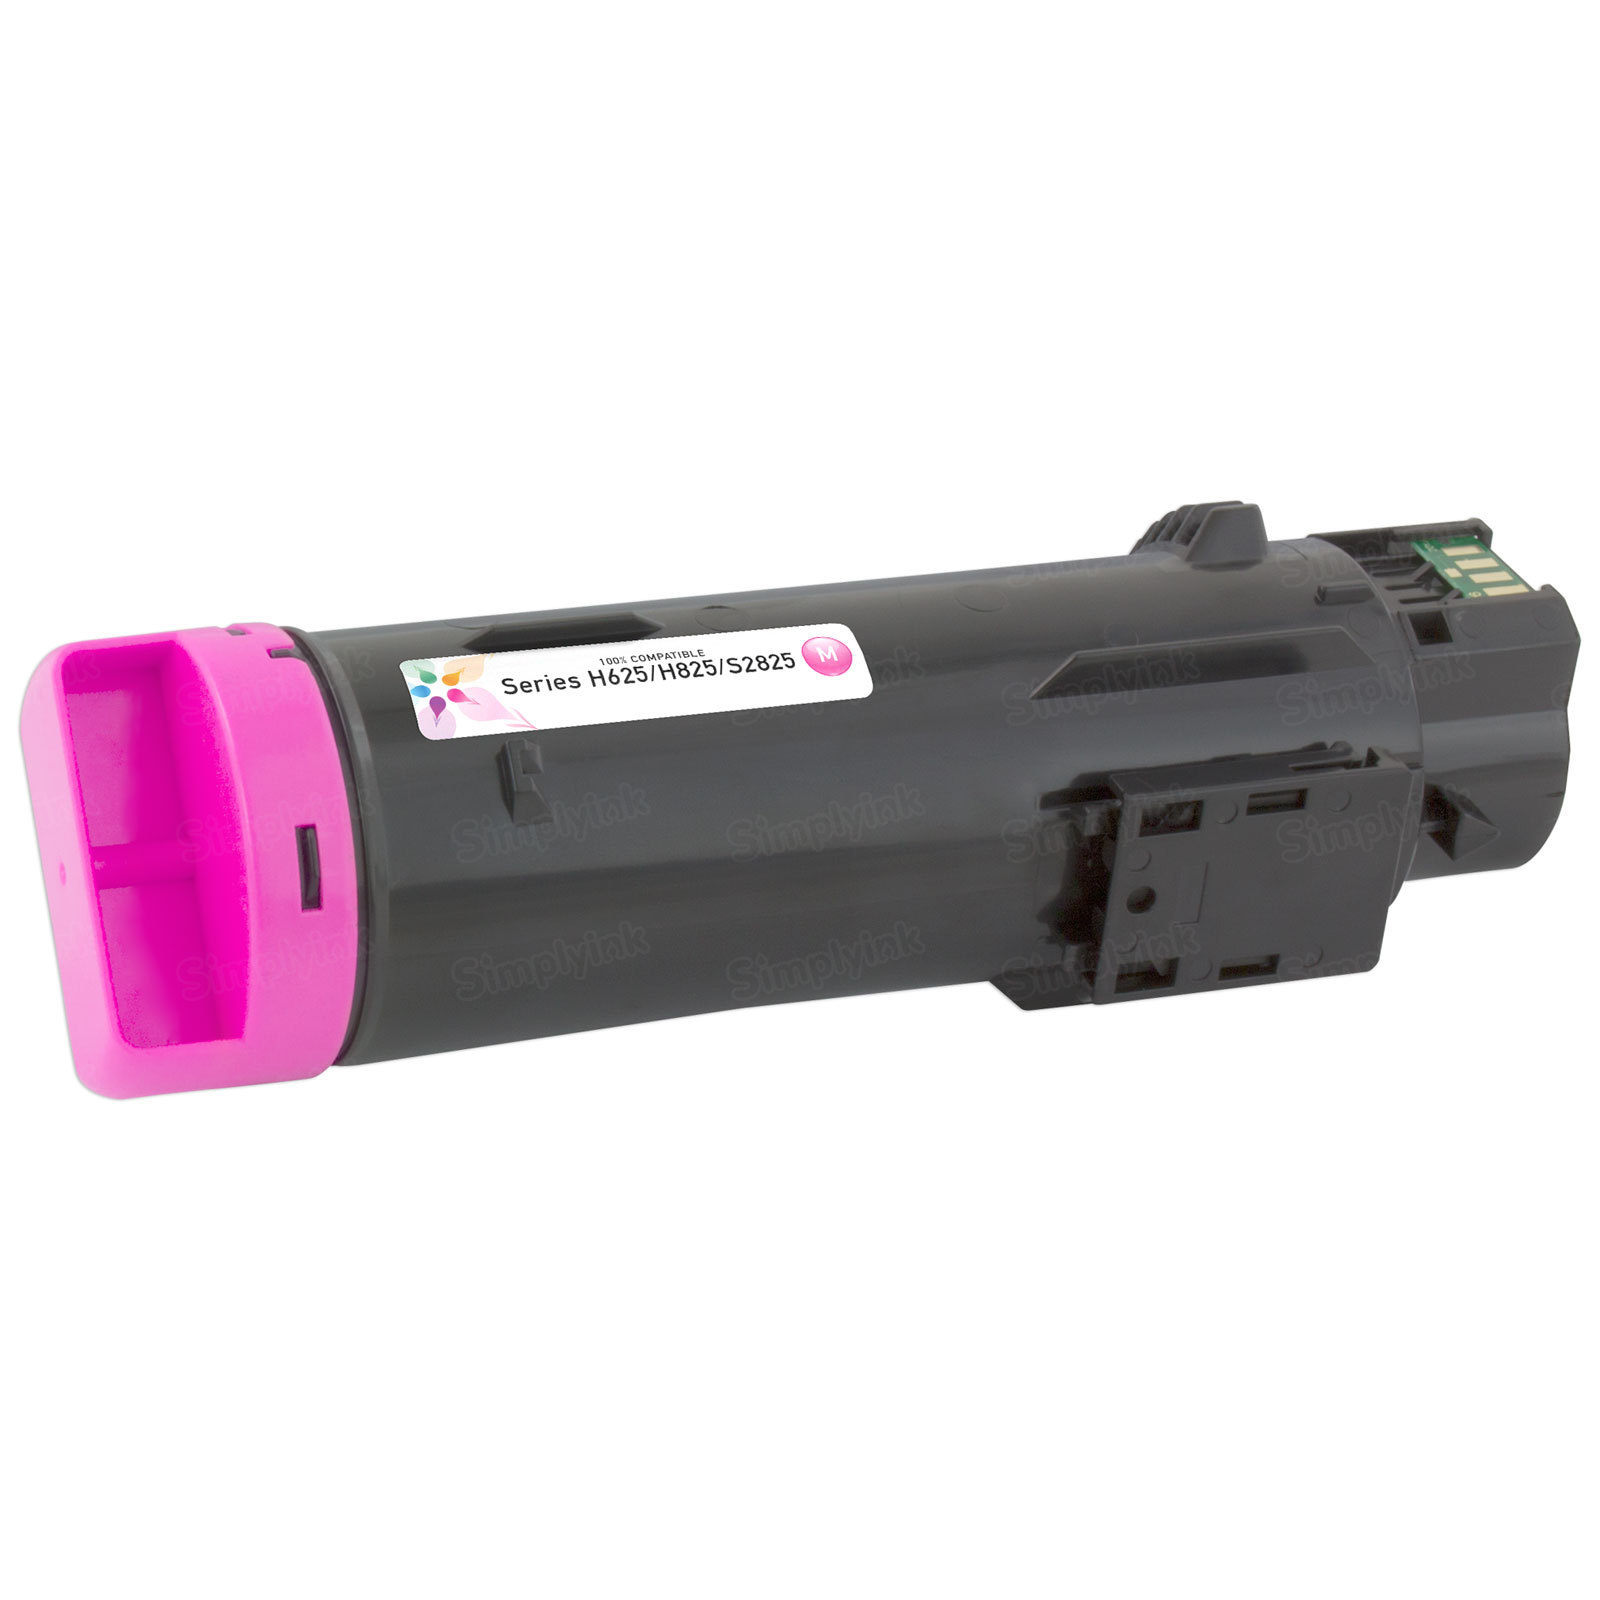 Comp. Magenta 5PG7P Toner for Dell H625/H825